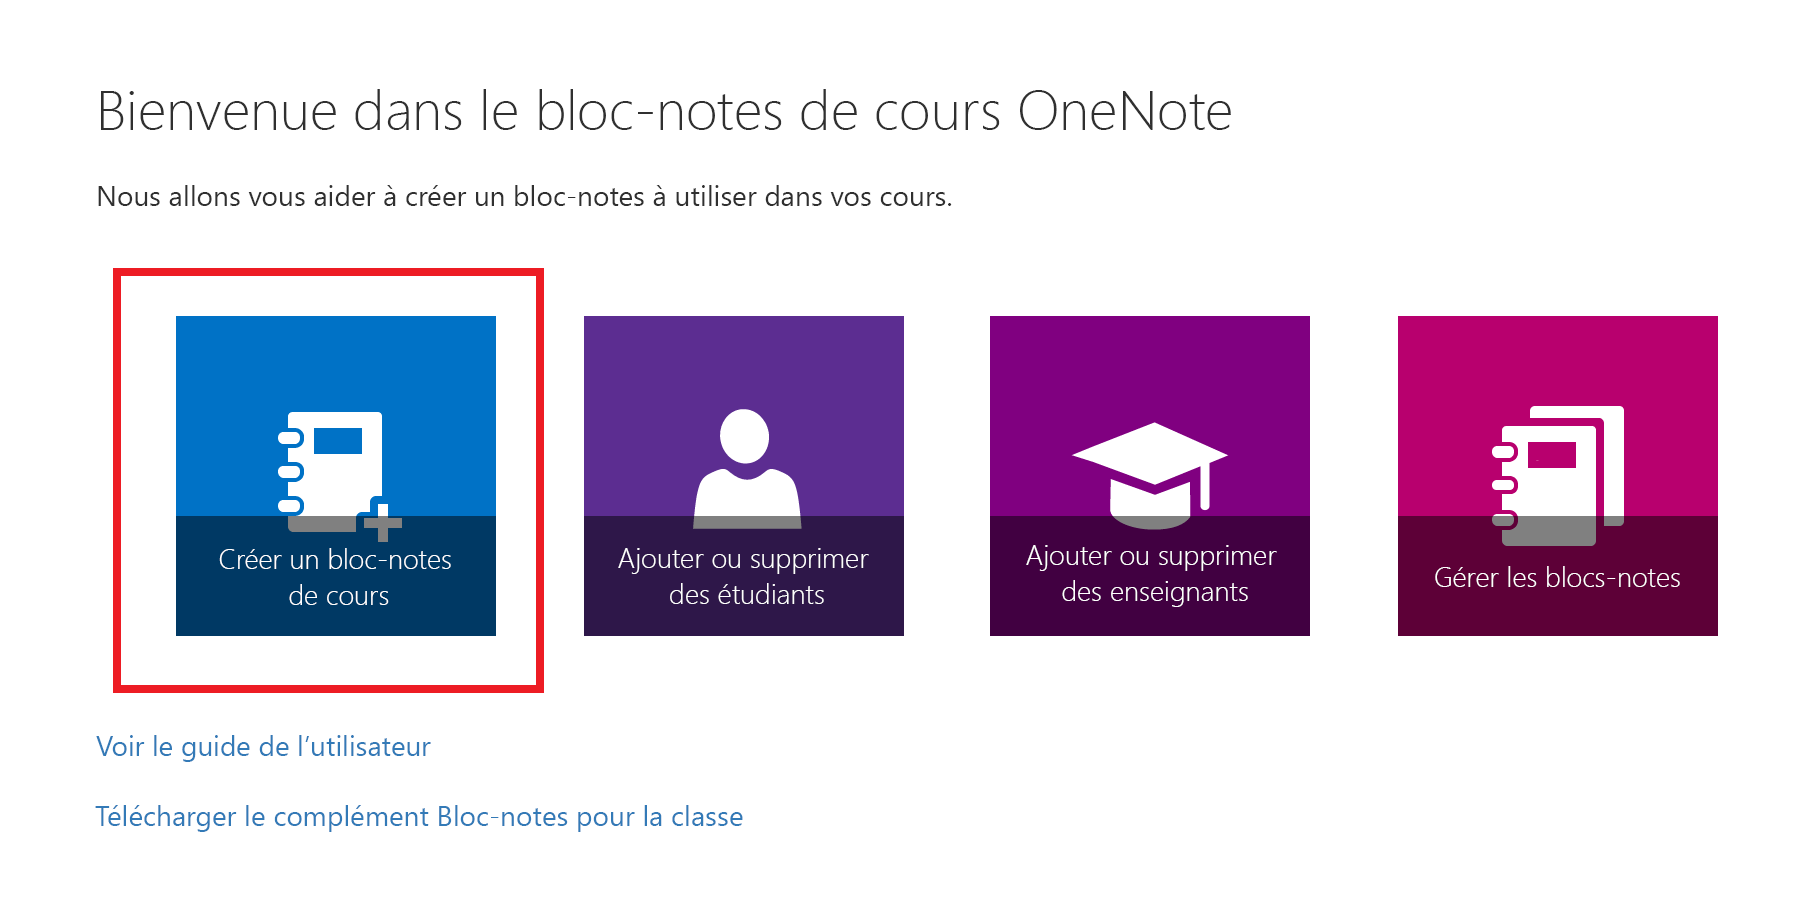 Capture d'écran de la page d'accueil de l'application Bloc-notes de cours